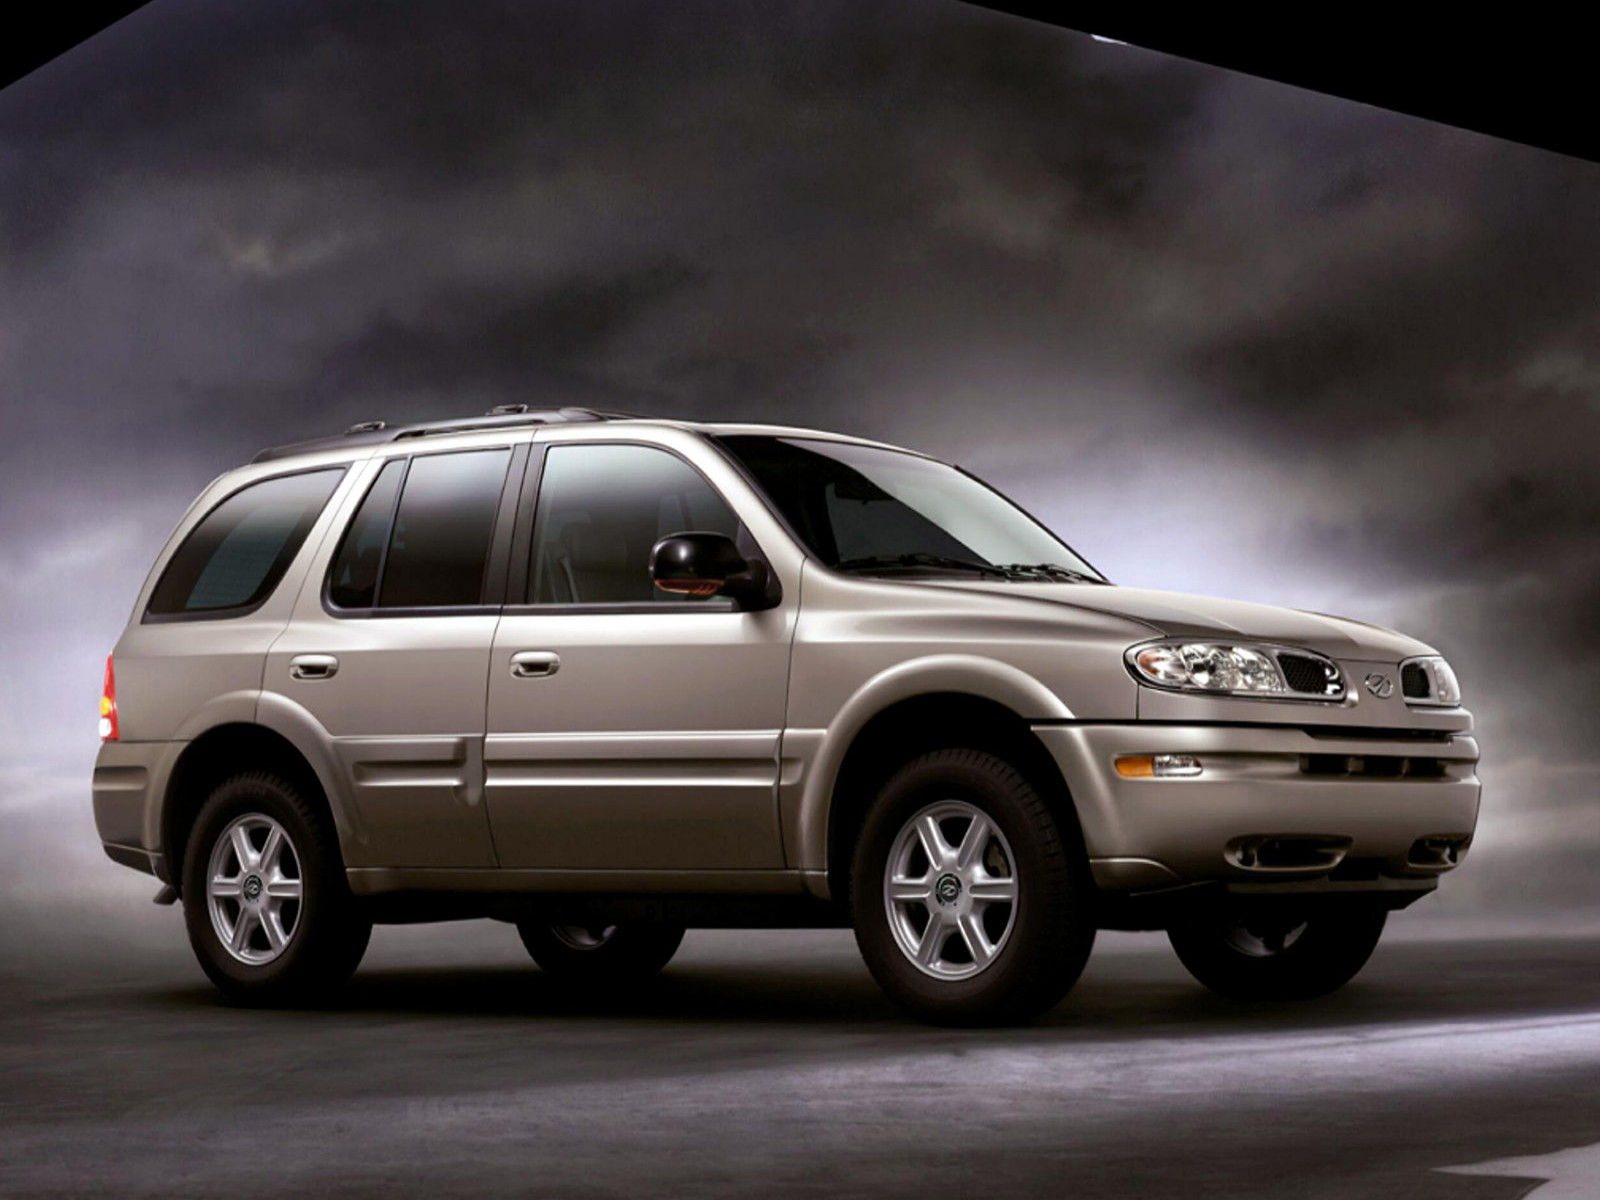 Car and car zone oldsmobile bravada 2002 new cars car reviews car pictures and auto industry